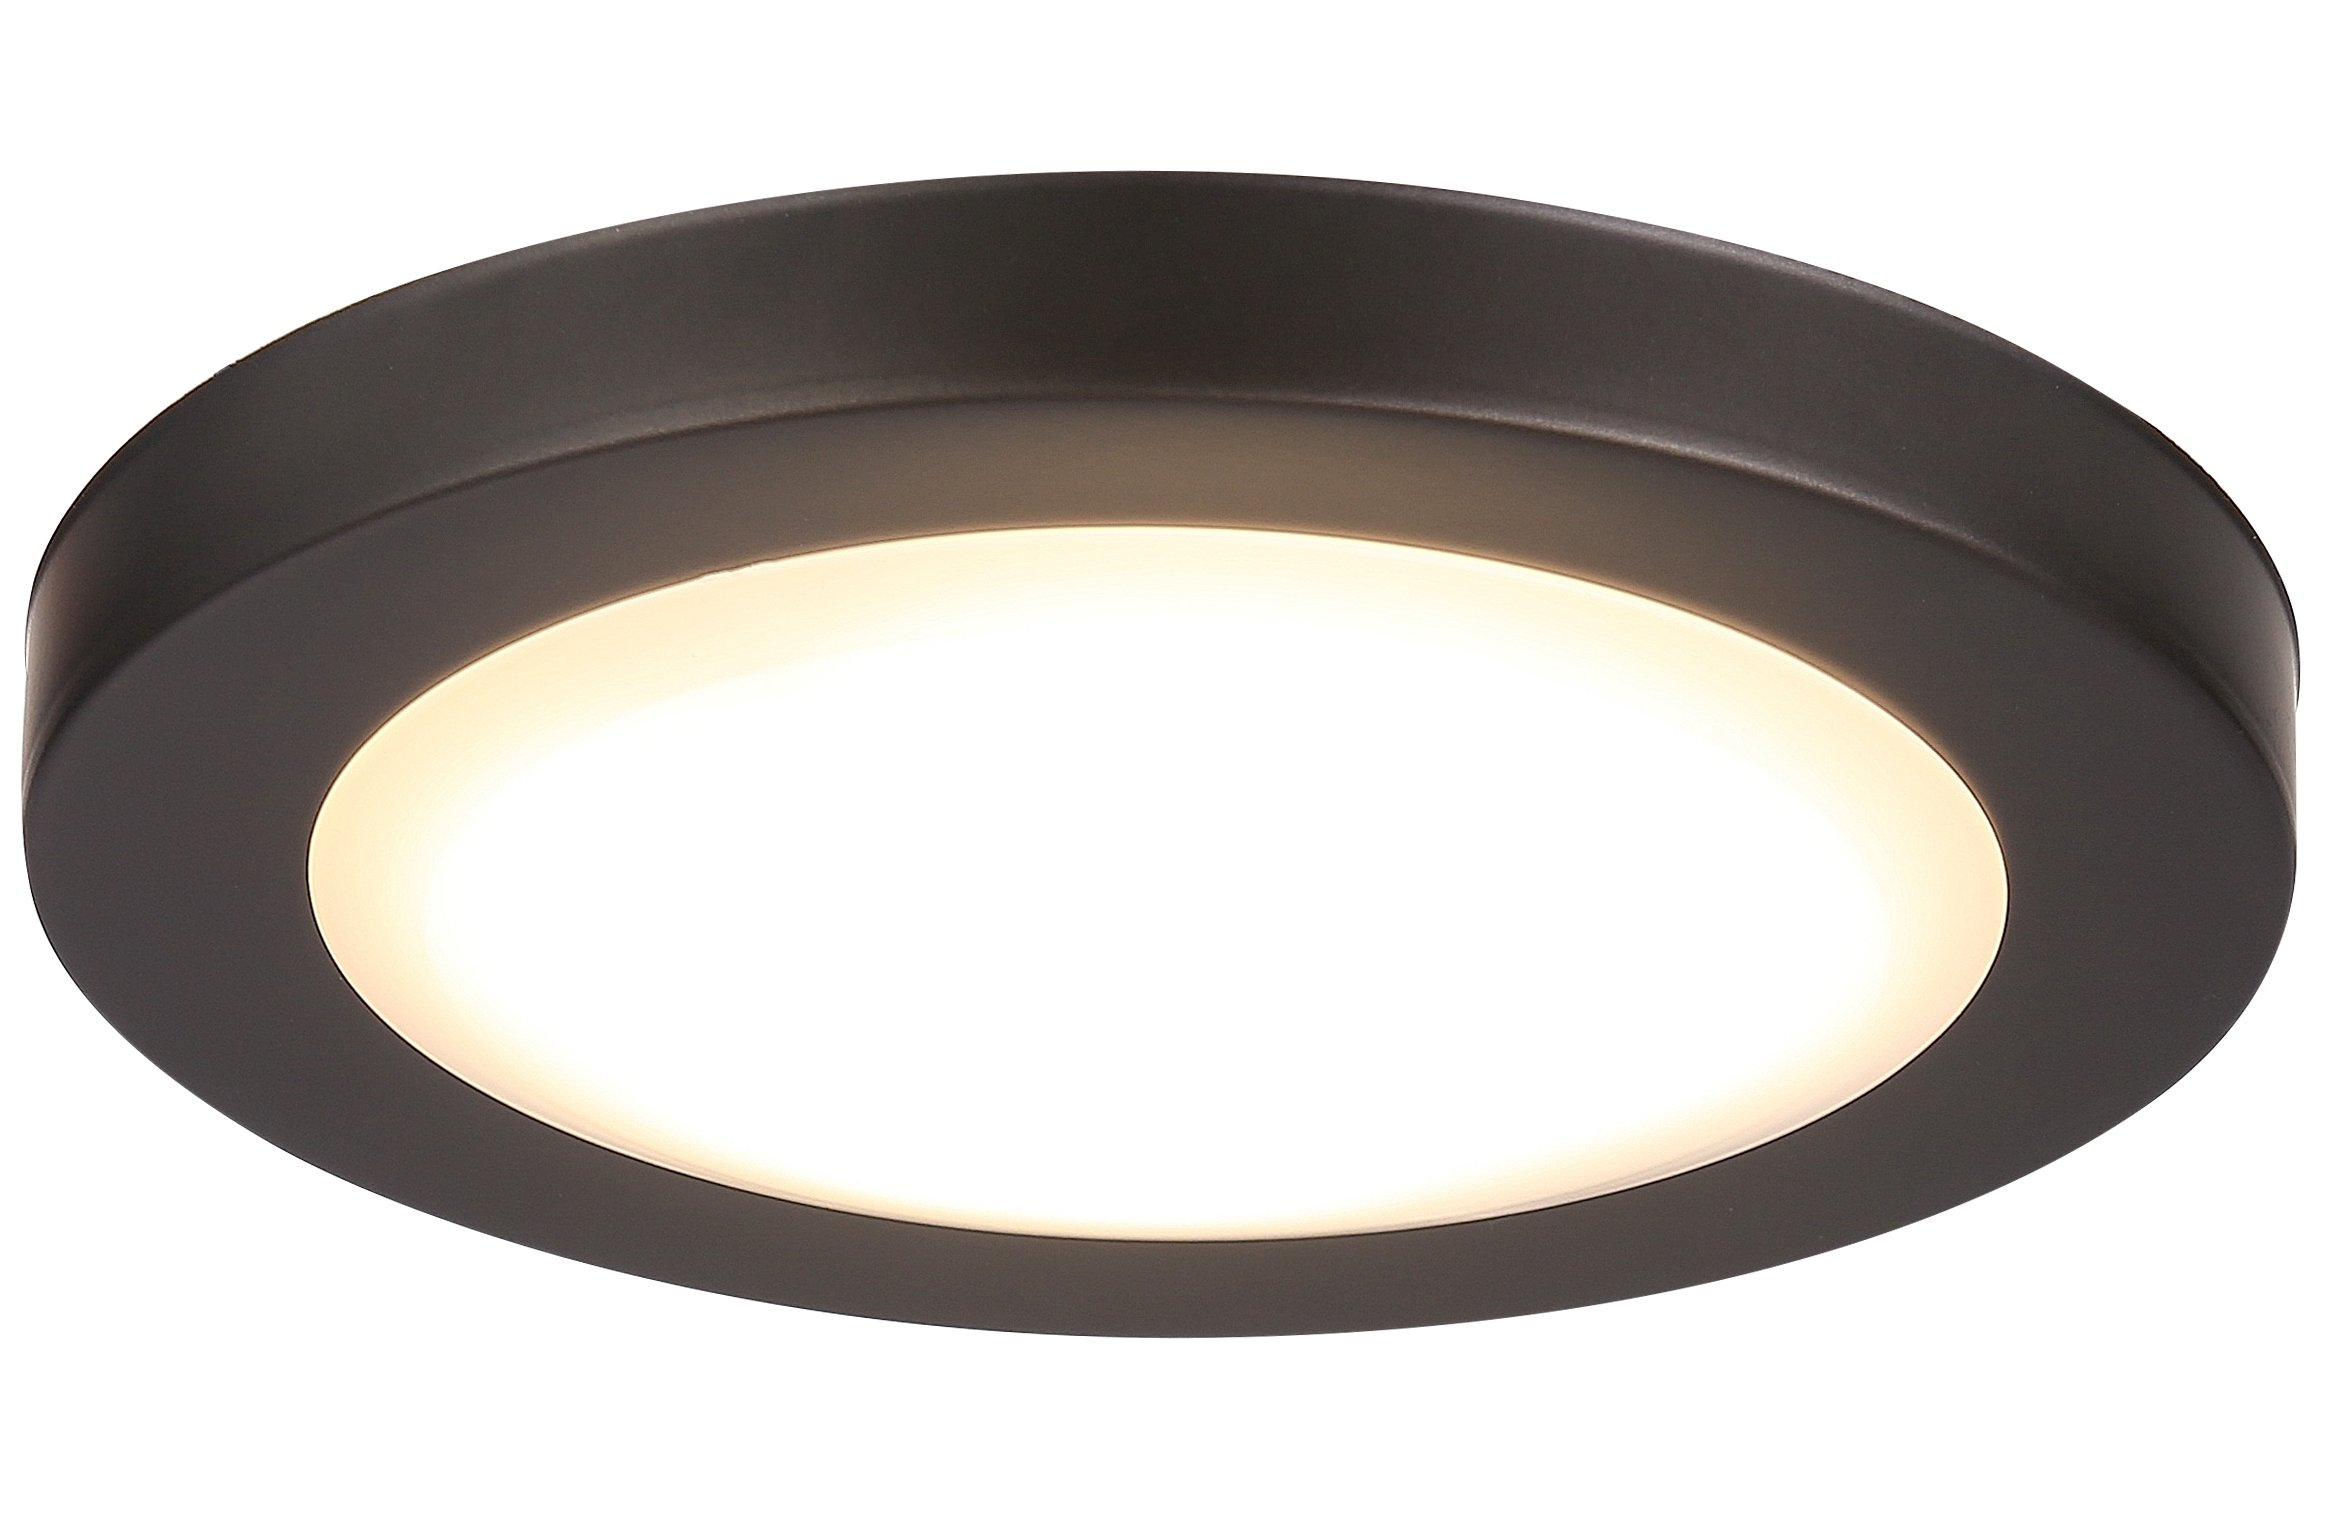 Cloudy Bay 7.5 inch LED Flush Mount Ceiling Light 4000K Cool White Dimmable 12W 840lm -100W Incandescent Fixture Equivalent,ETL,ORB Wet Location